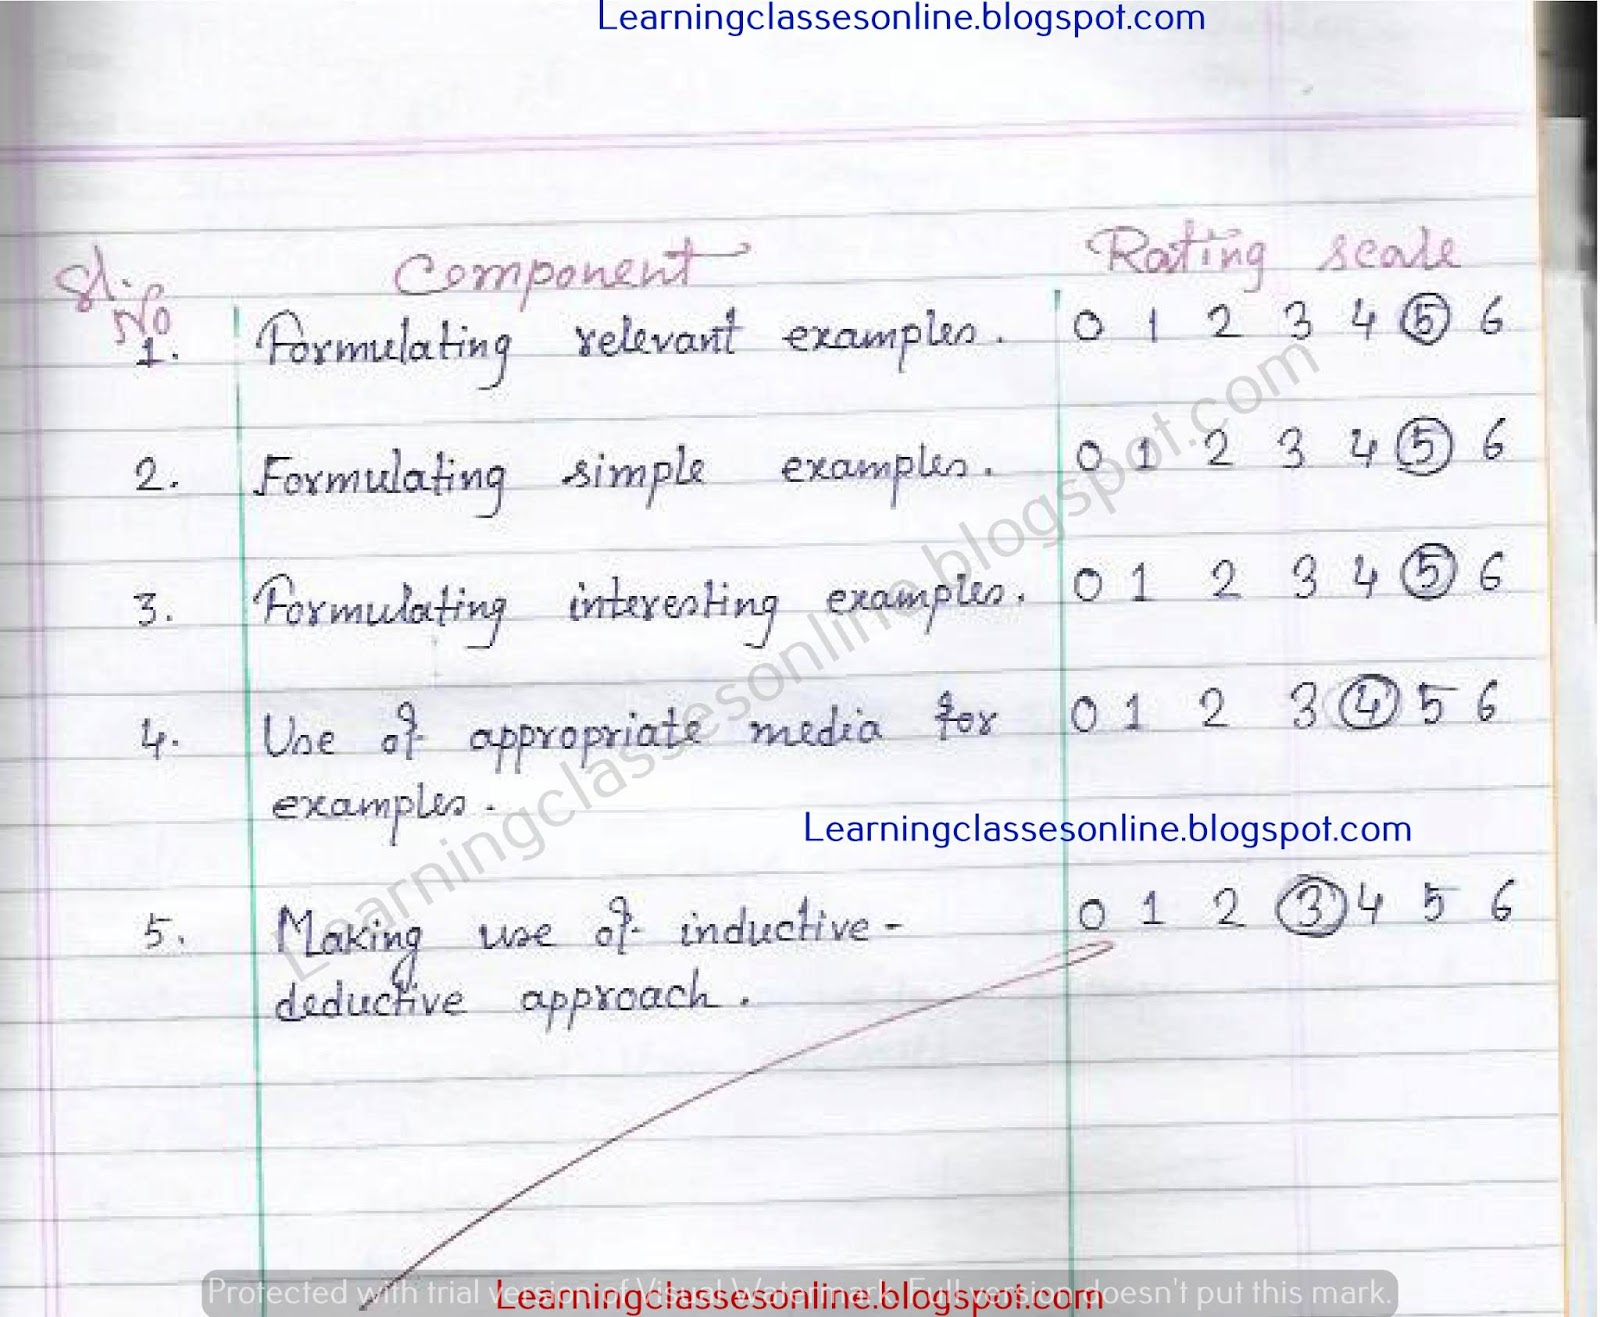 b.ed biological science and life science lesson plan practical file and notebook